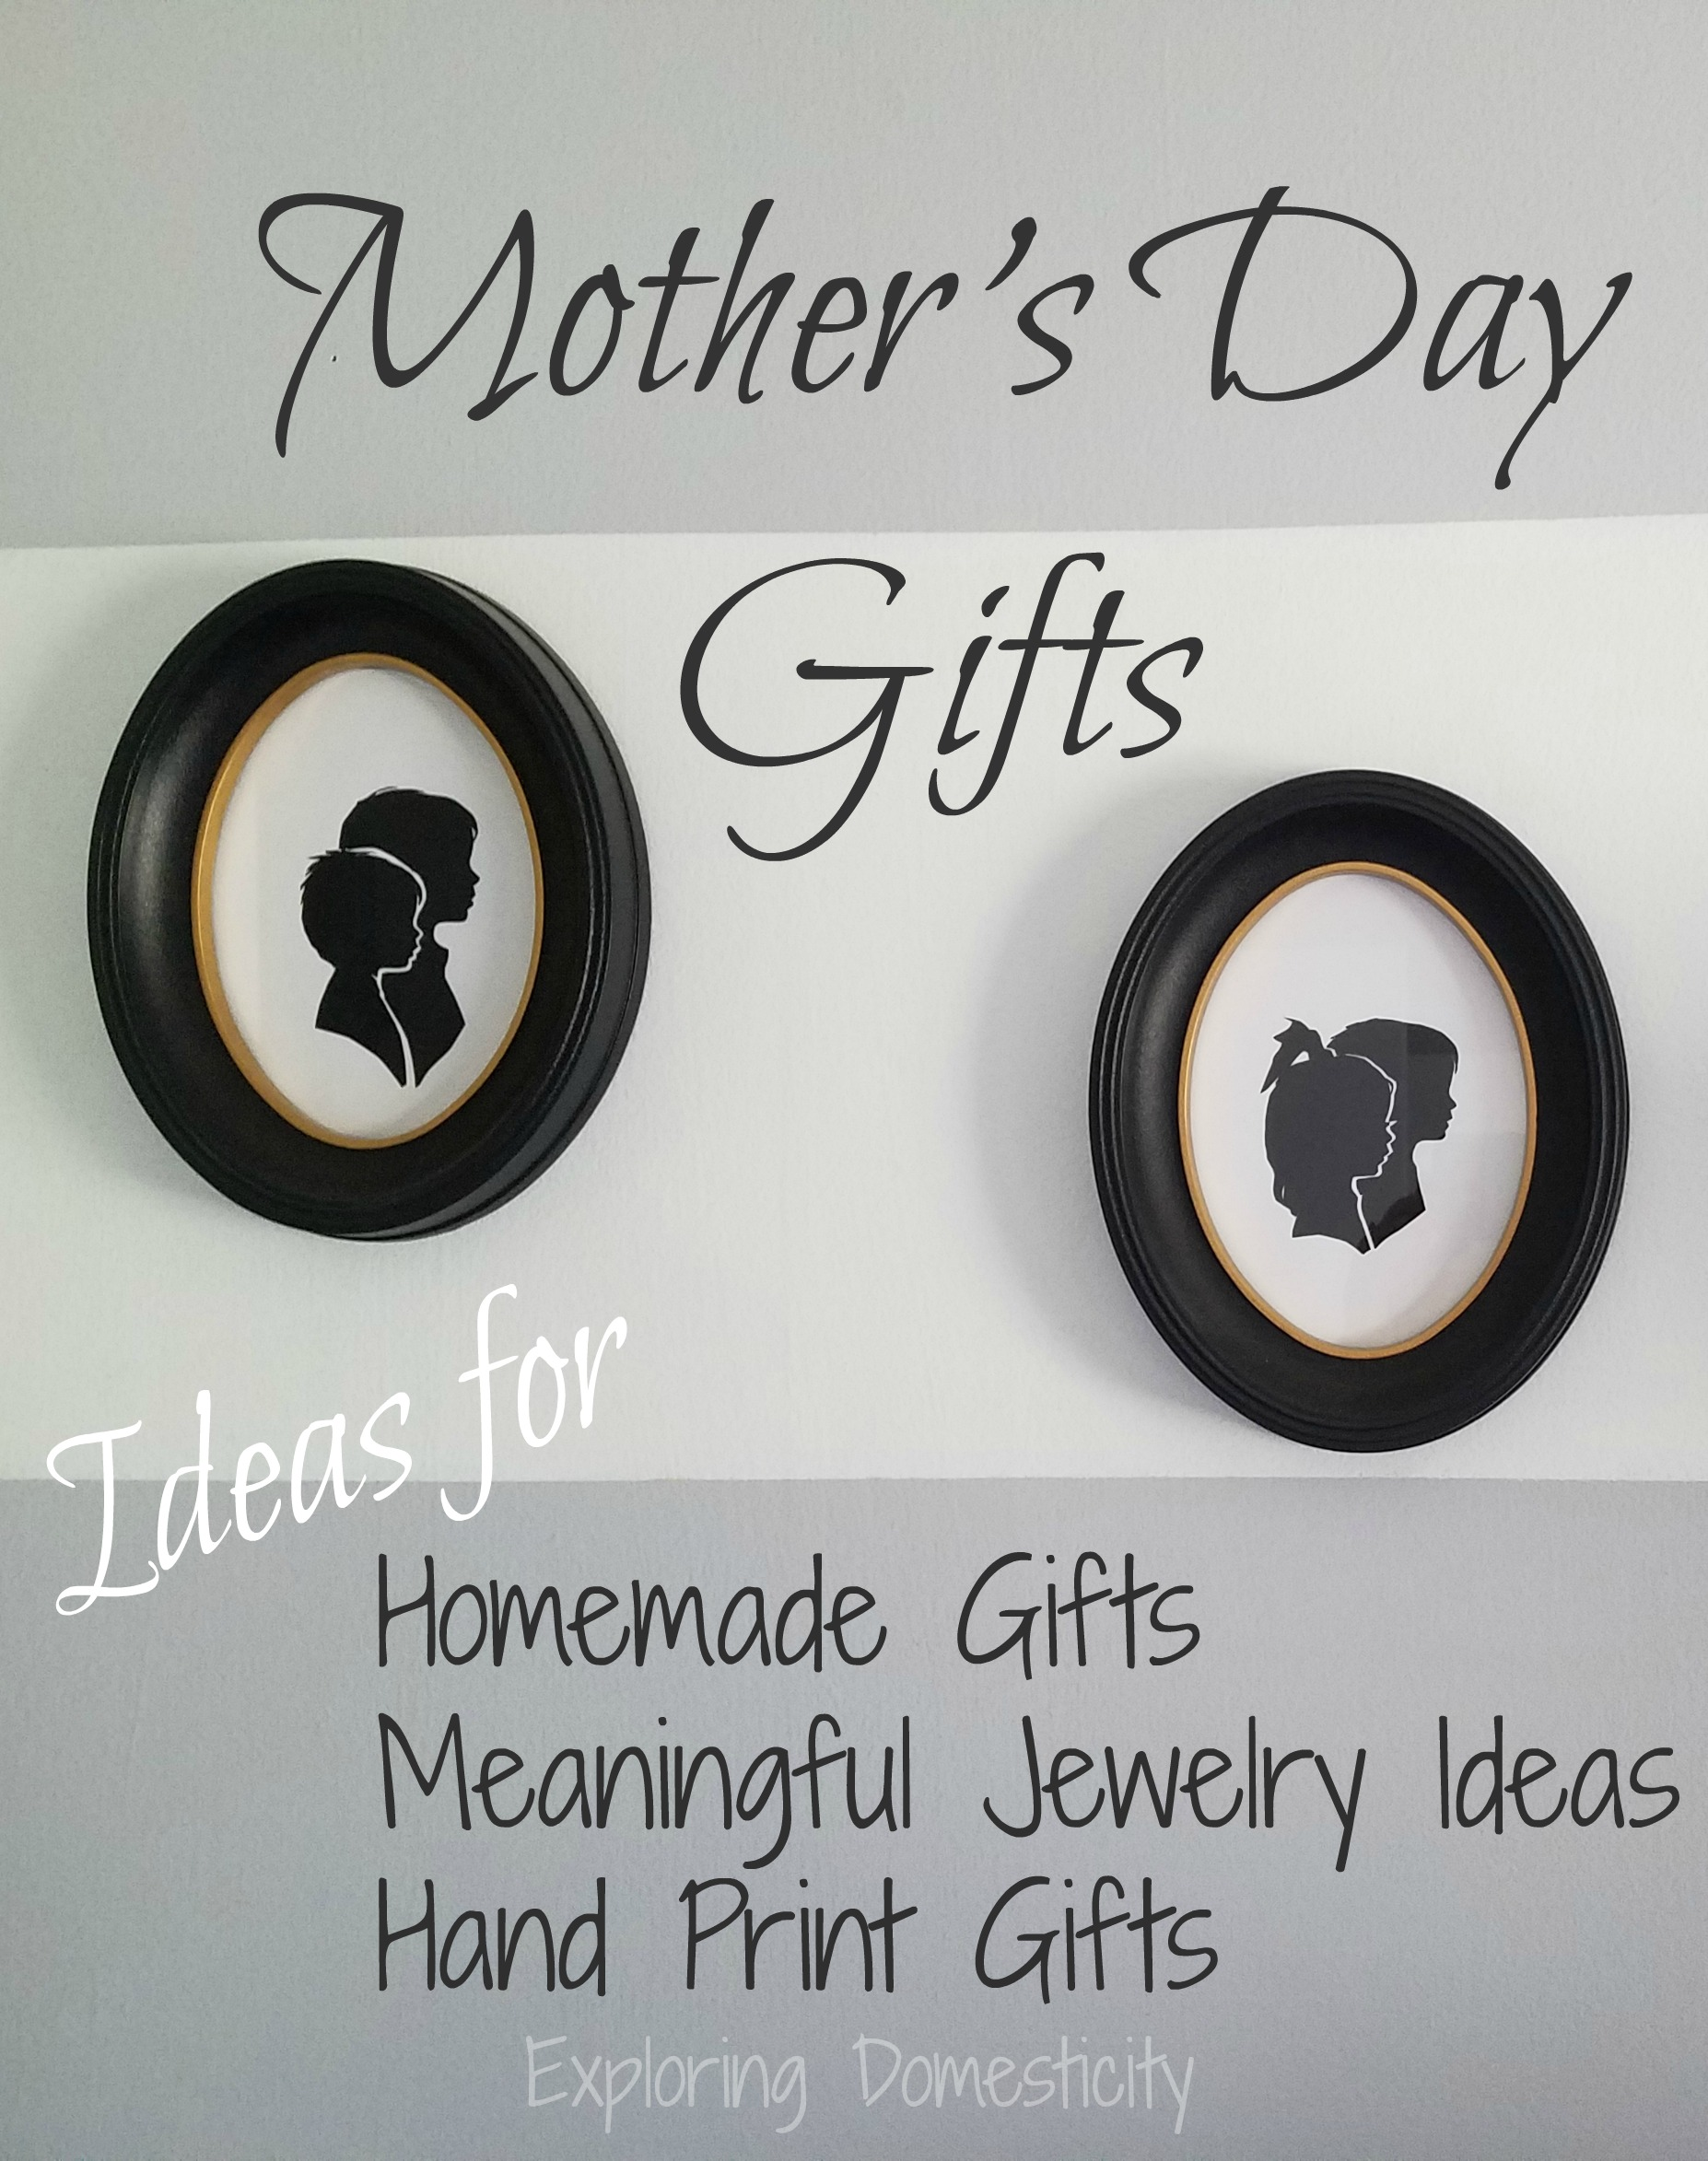 Mother\'s Day Gifts: Homemade, Meaningful Jewelry, and Hand Print Art ...